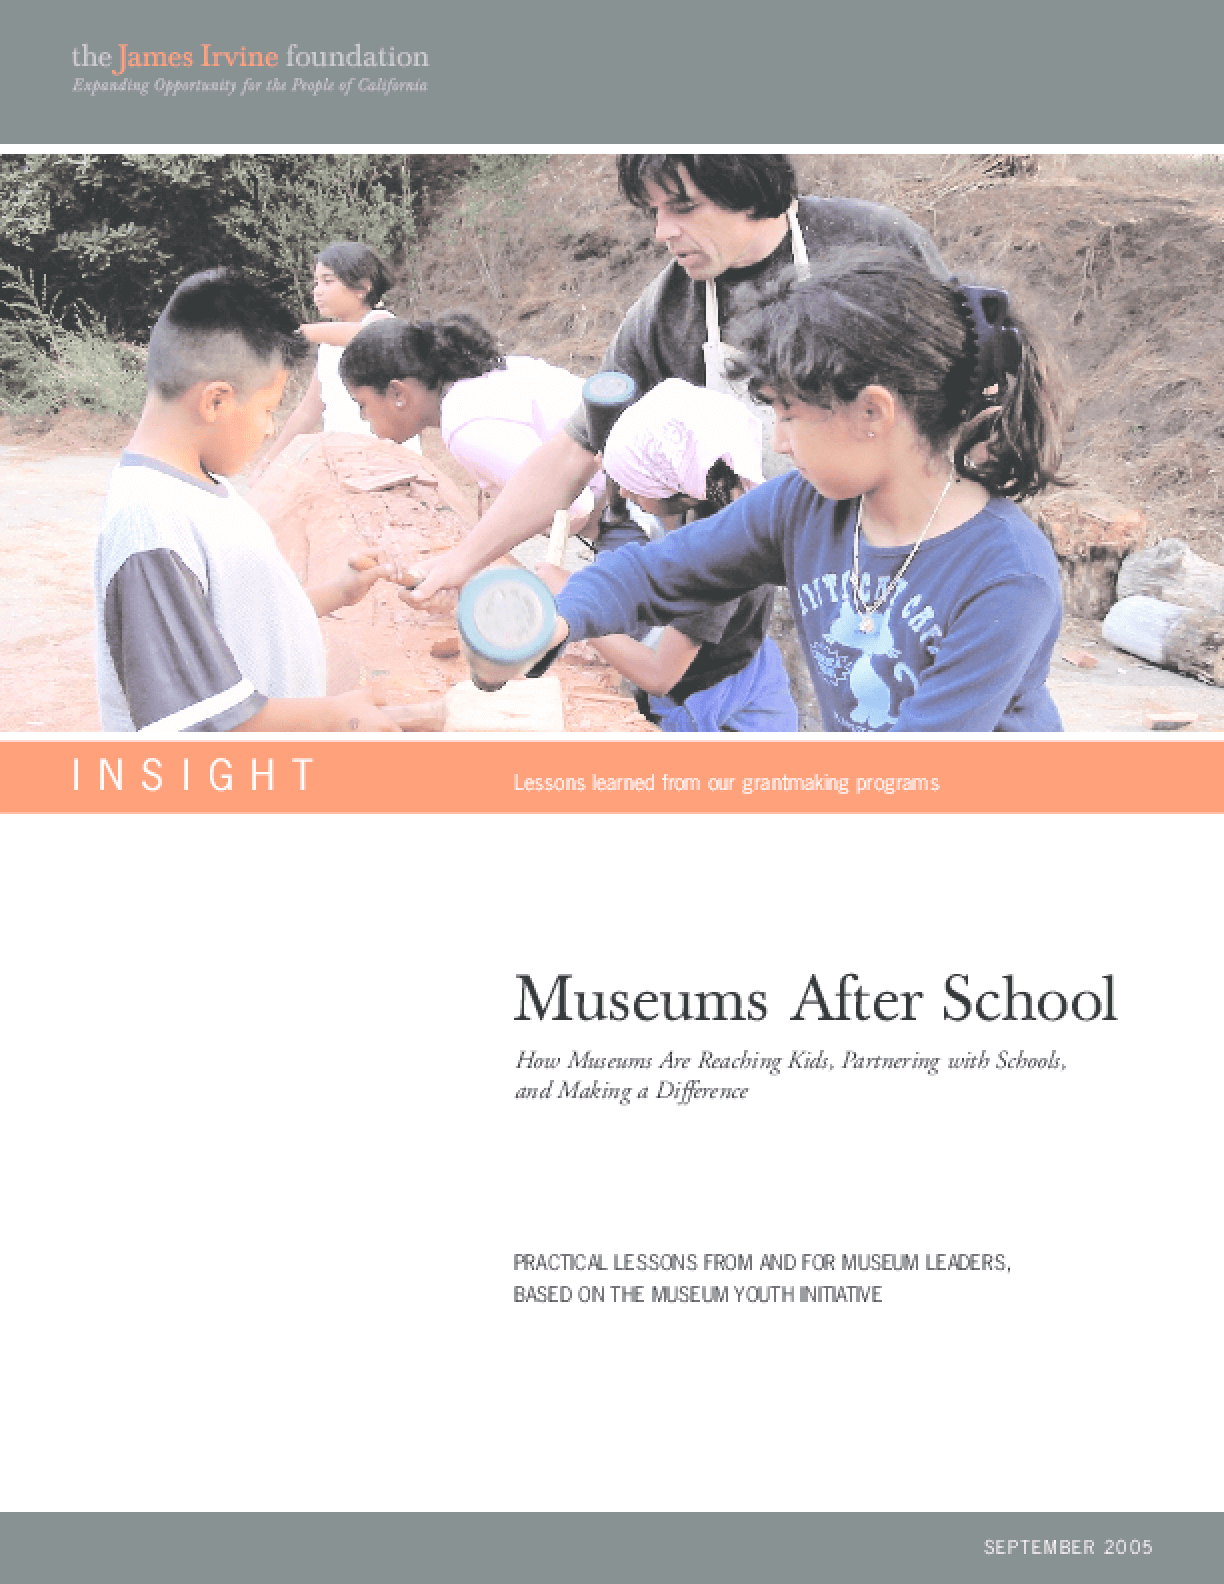 Museums After School: How Museums Are Reaching Kids, Partnering With Schools, and Making a Difference